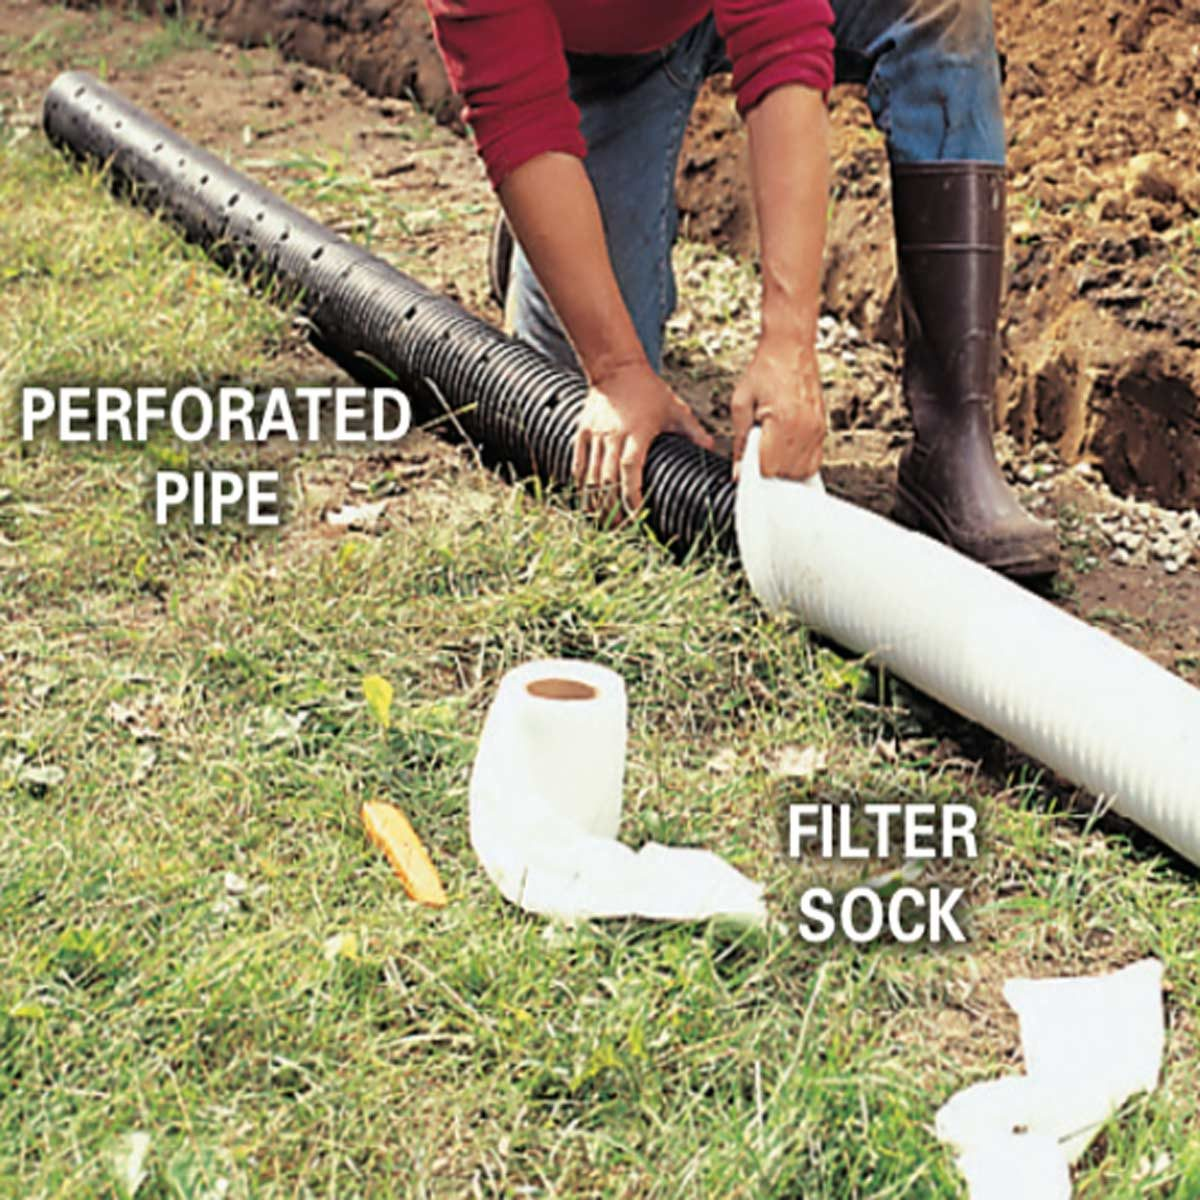 How to Achieve Better Yard Drainage | Family Handyman